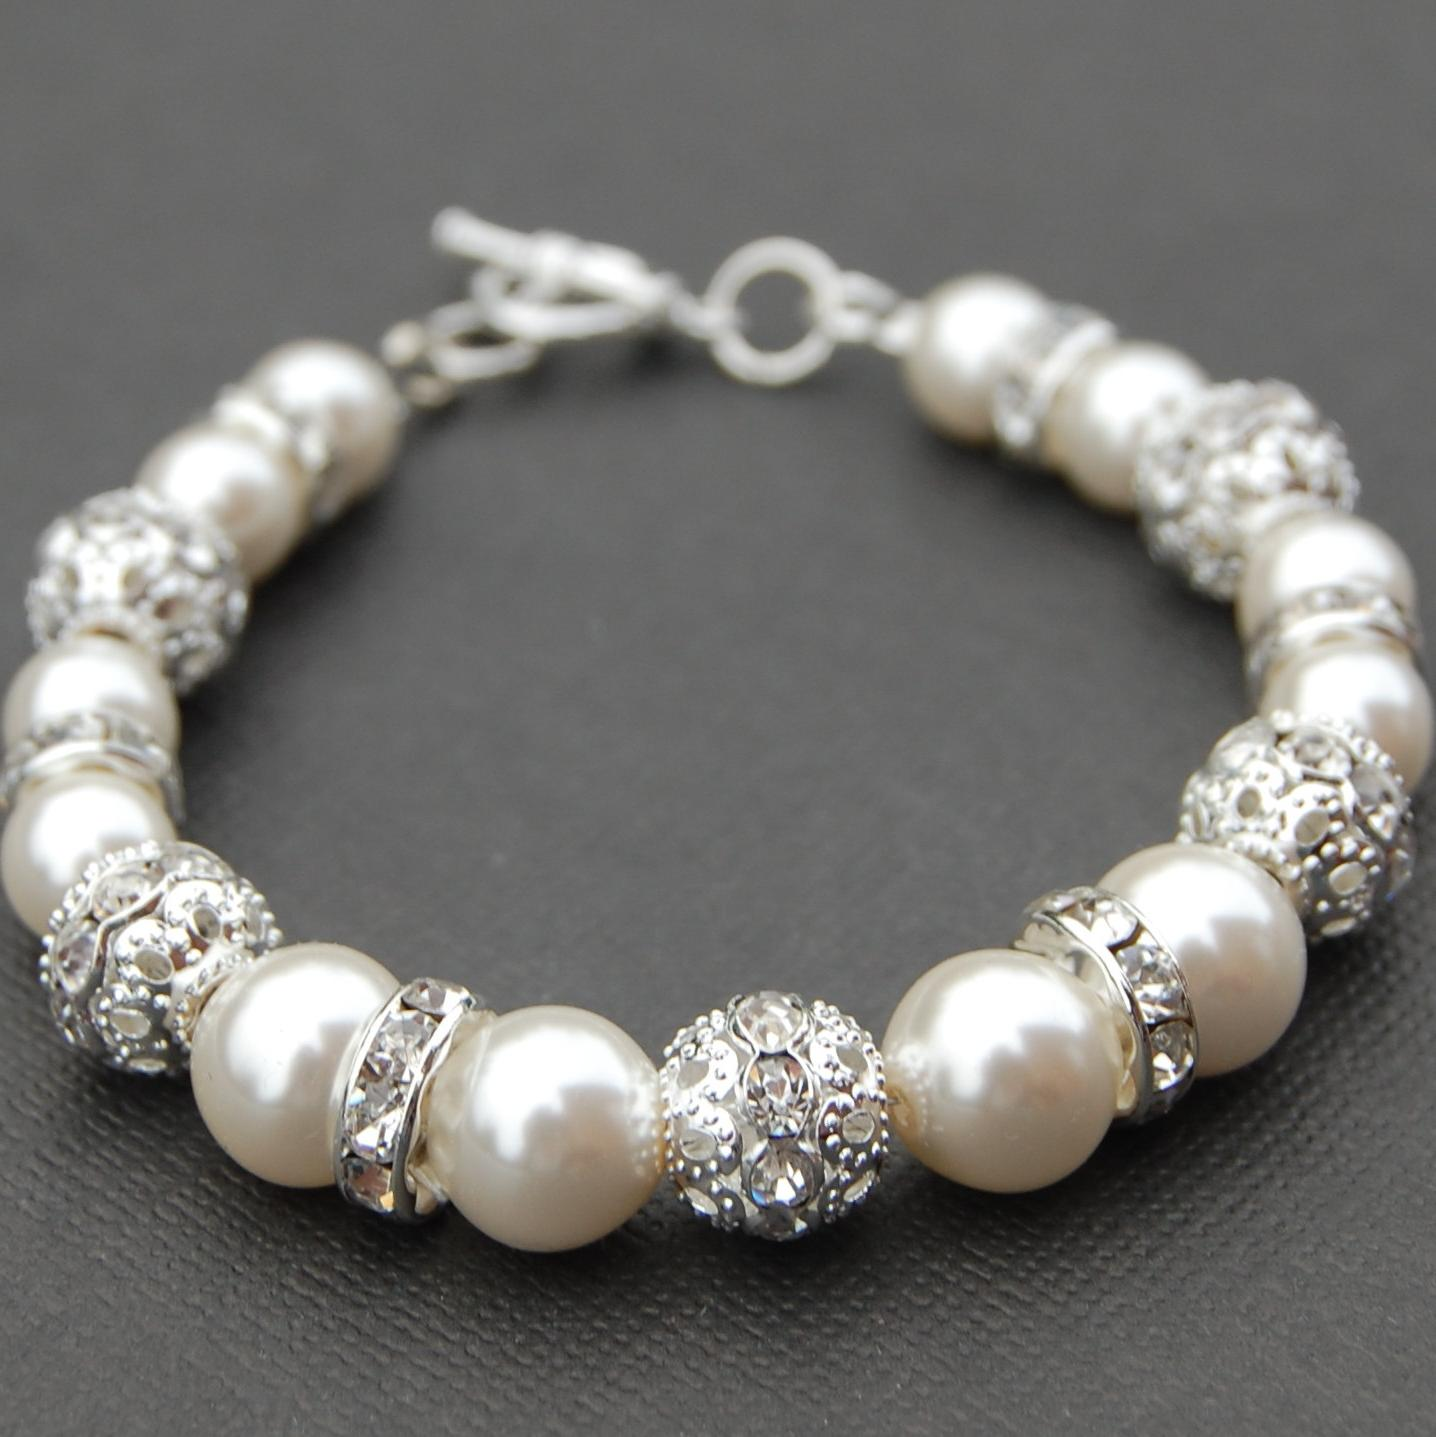 Sparkling Ivory Pearl Bracelet, Bling Wedding Jewelry, Bridesmaid Bracelet,